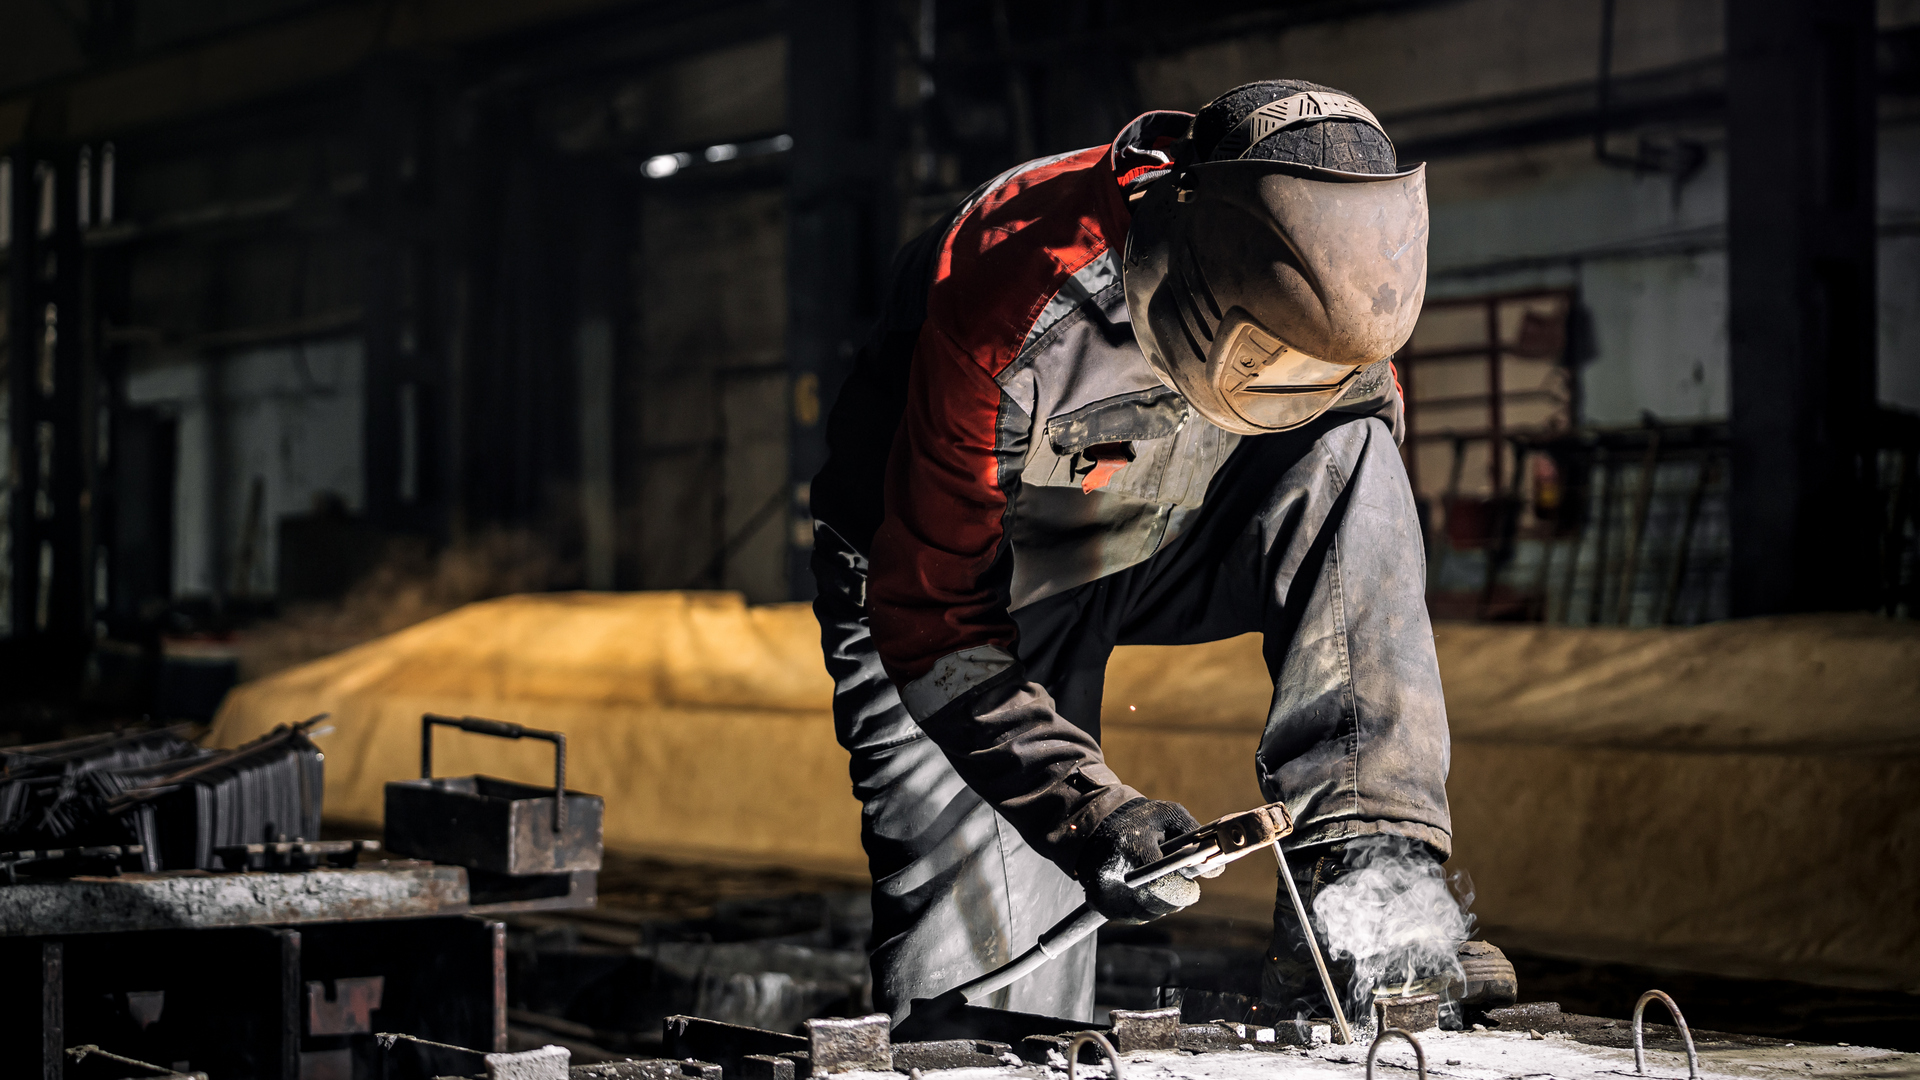 A young  man welder in  uniform, welding mask and welders leathers, weld  metal  with a  welding machine at the construction site, white smoke